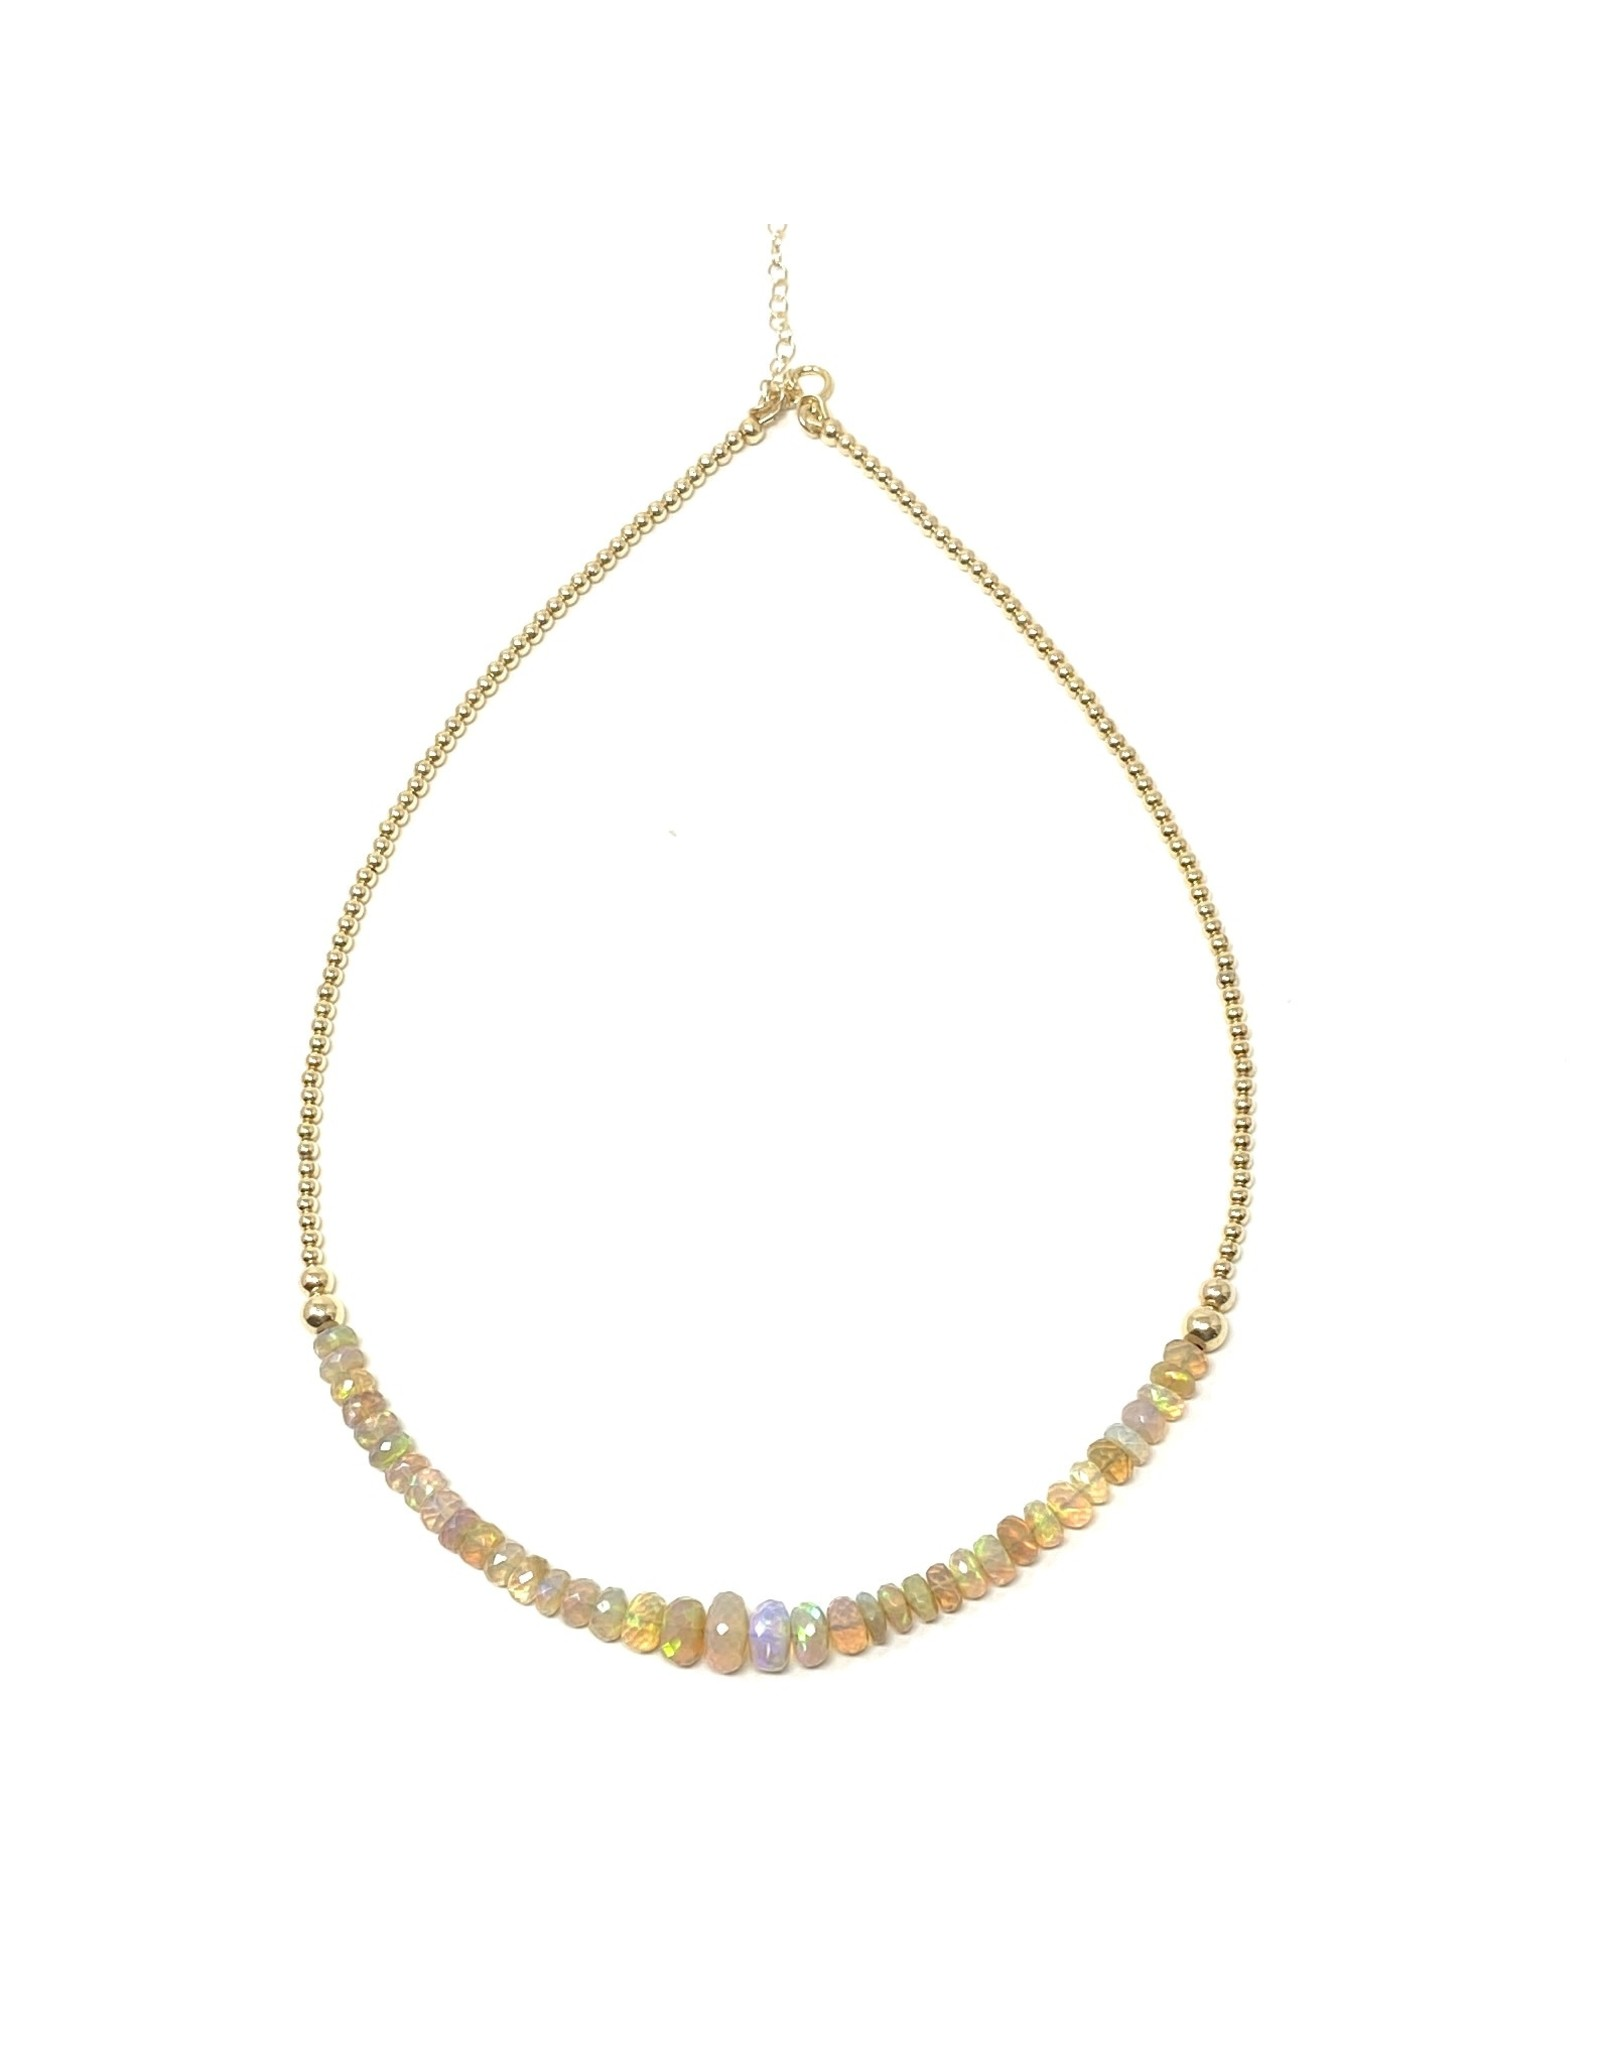 Gold Beaded Ethiopian Opal Necklace